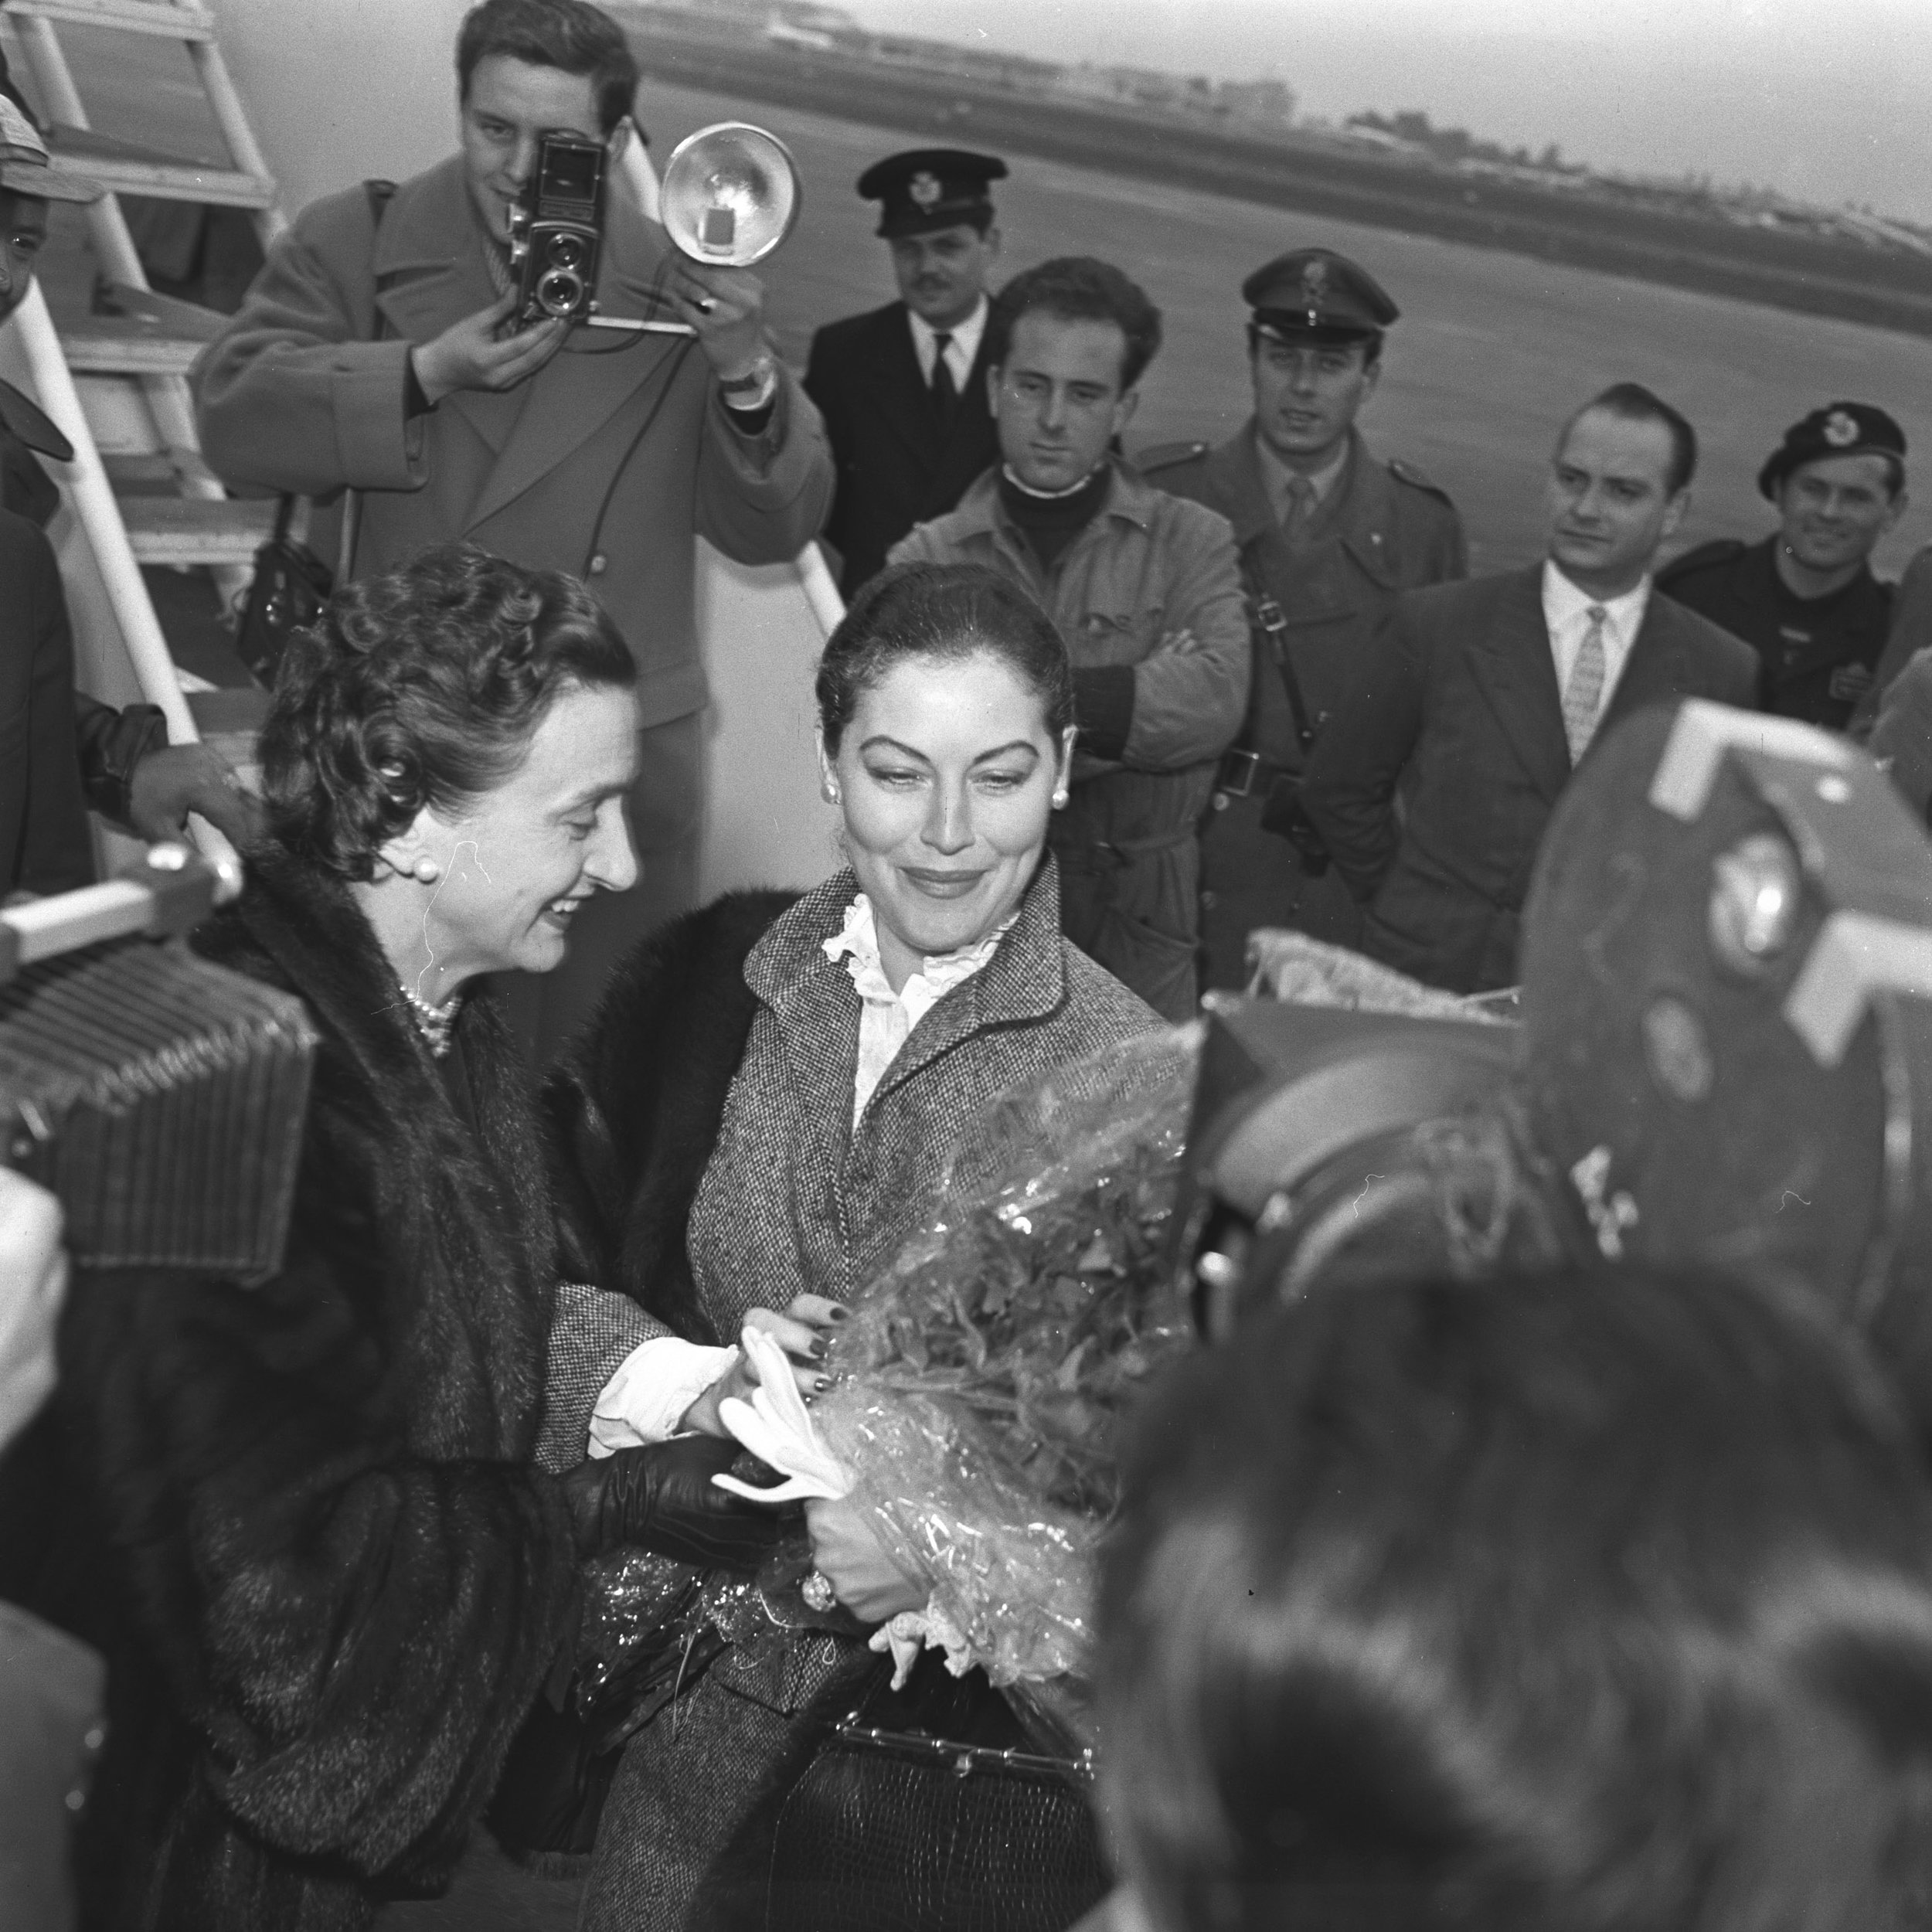 Ava Gardner arriving in Rome Ciampino Airport, greeting friends (Micol Fontana) and paparazzi, Photos Giuseppe Palmas, Courtesy of Roberto Palmas, Giuseppe Palmas Photographic Archive.